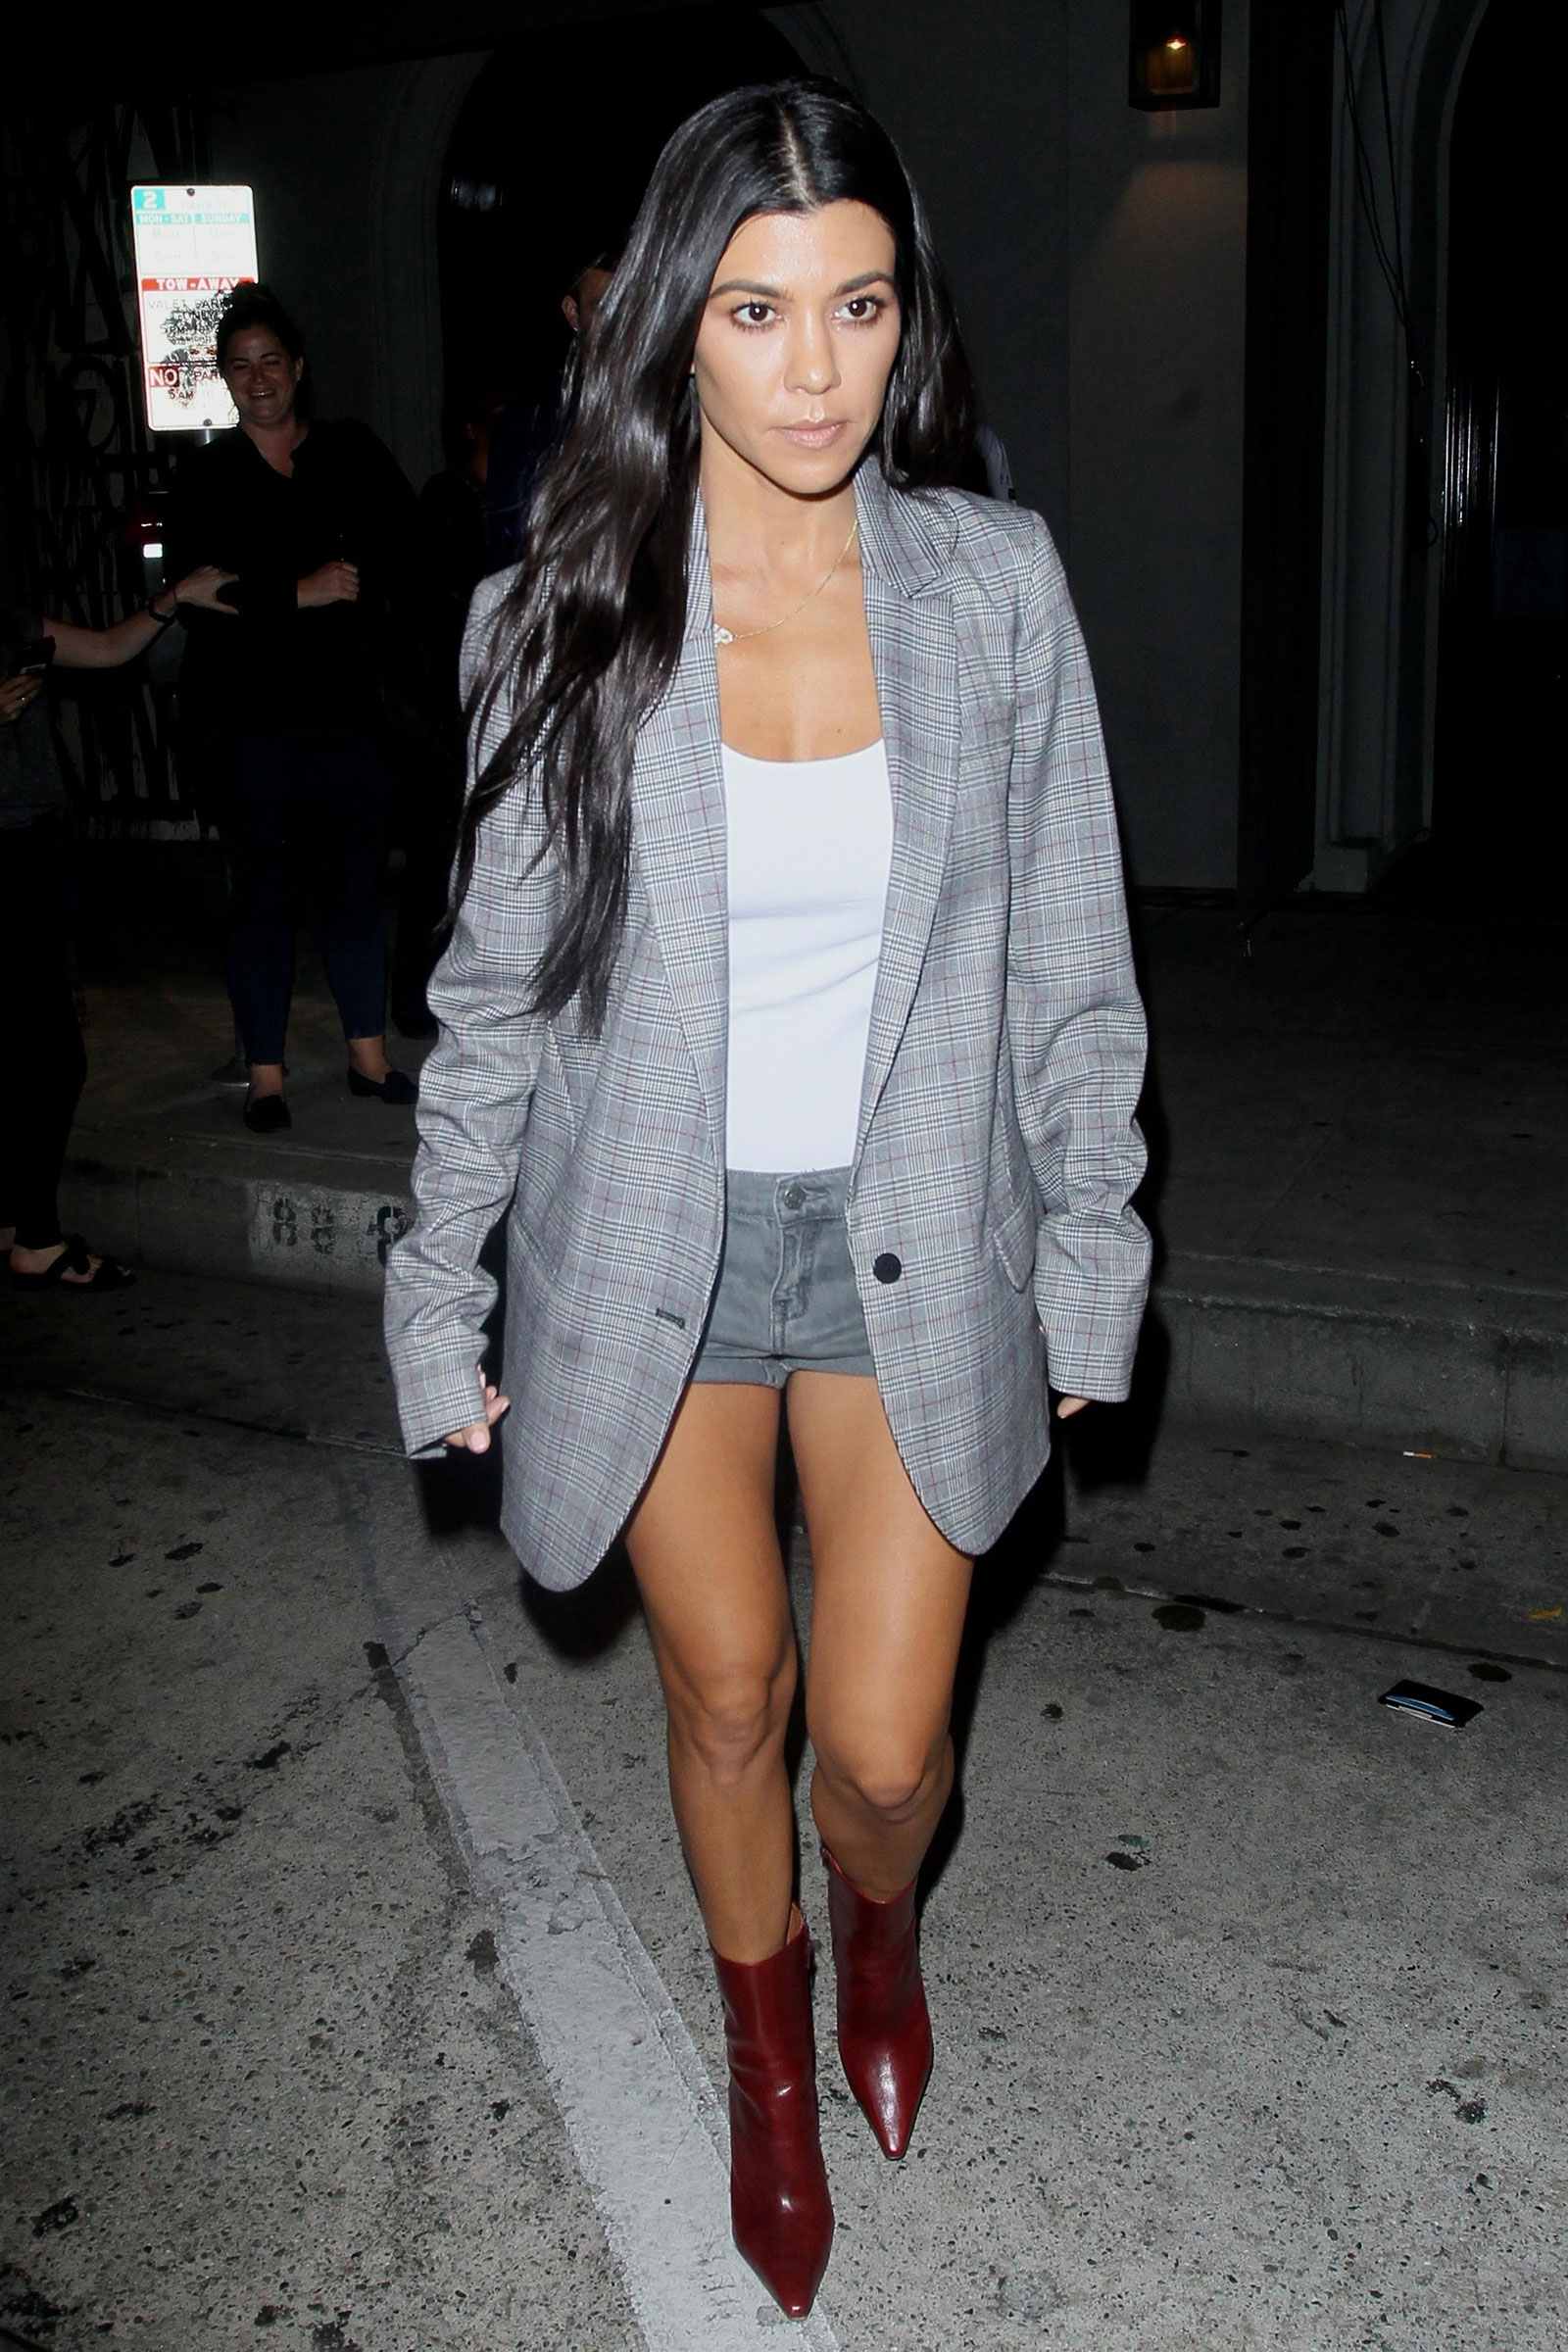 4613688be499 Kourtney Kardashian is seen leaving a restaurant in an oversized blazer,  denim shorts and red